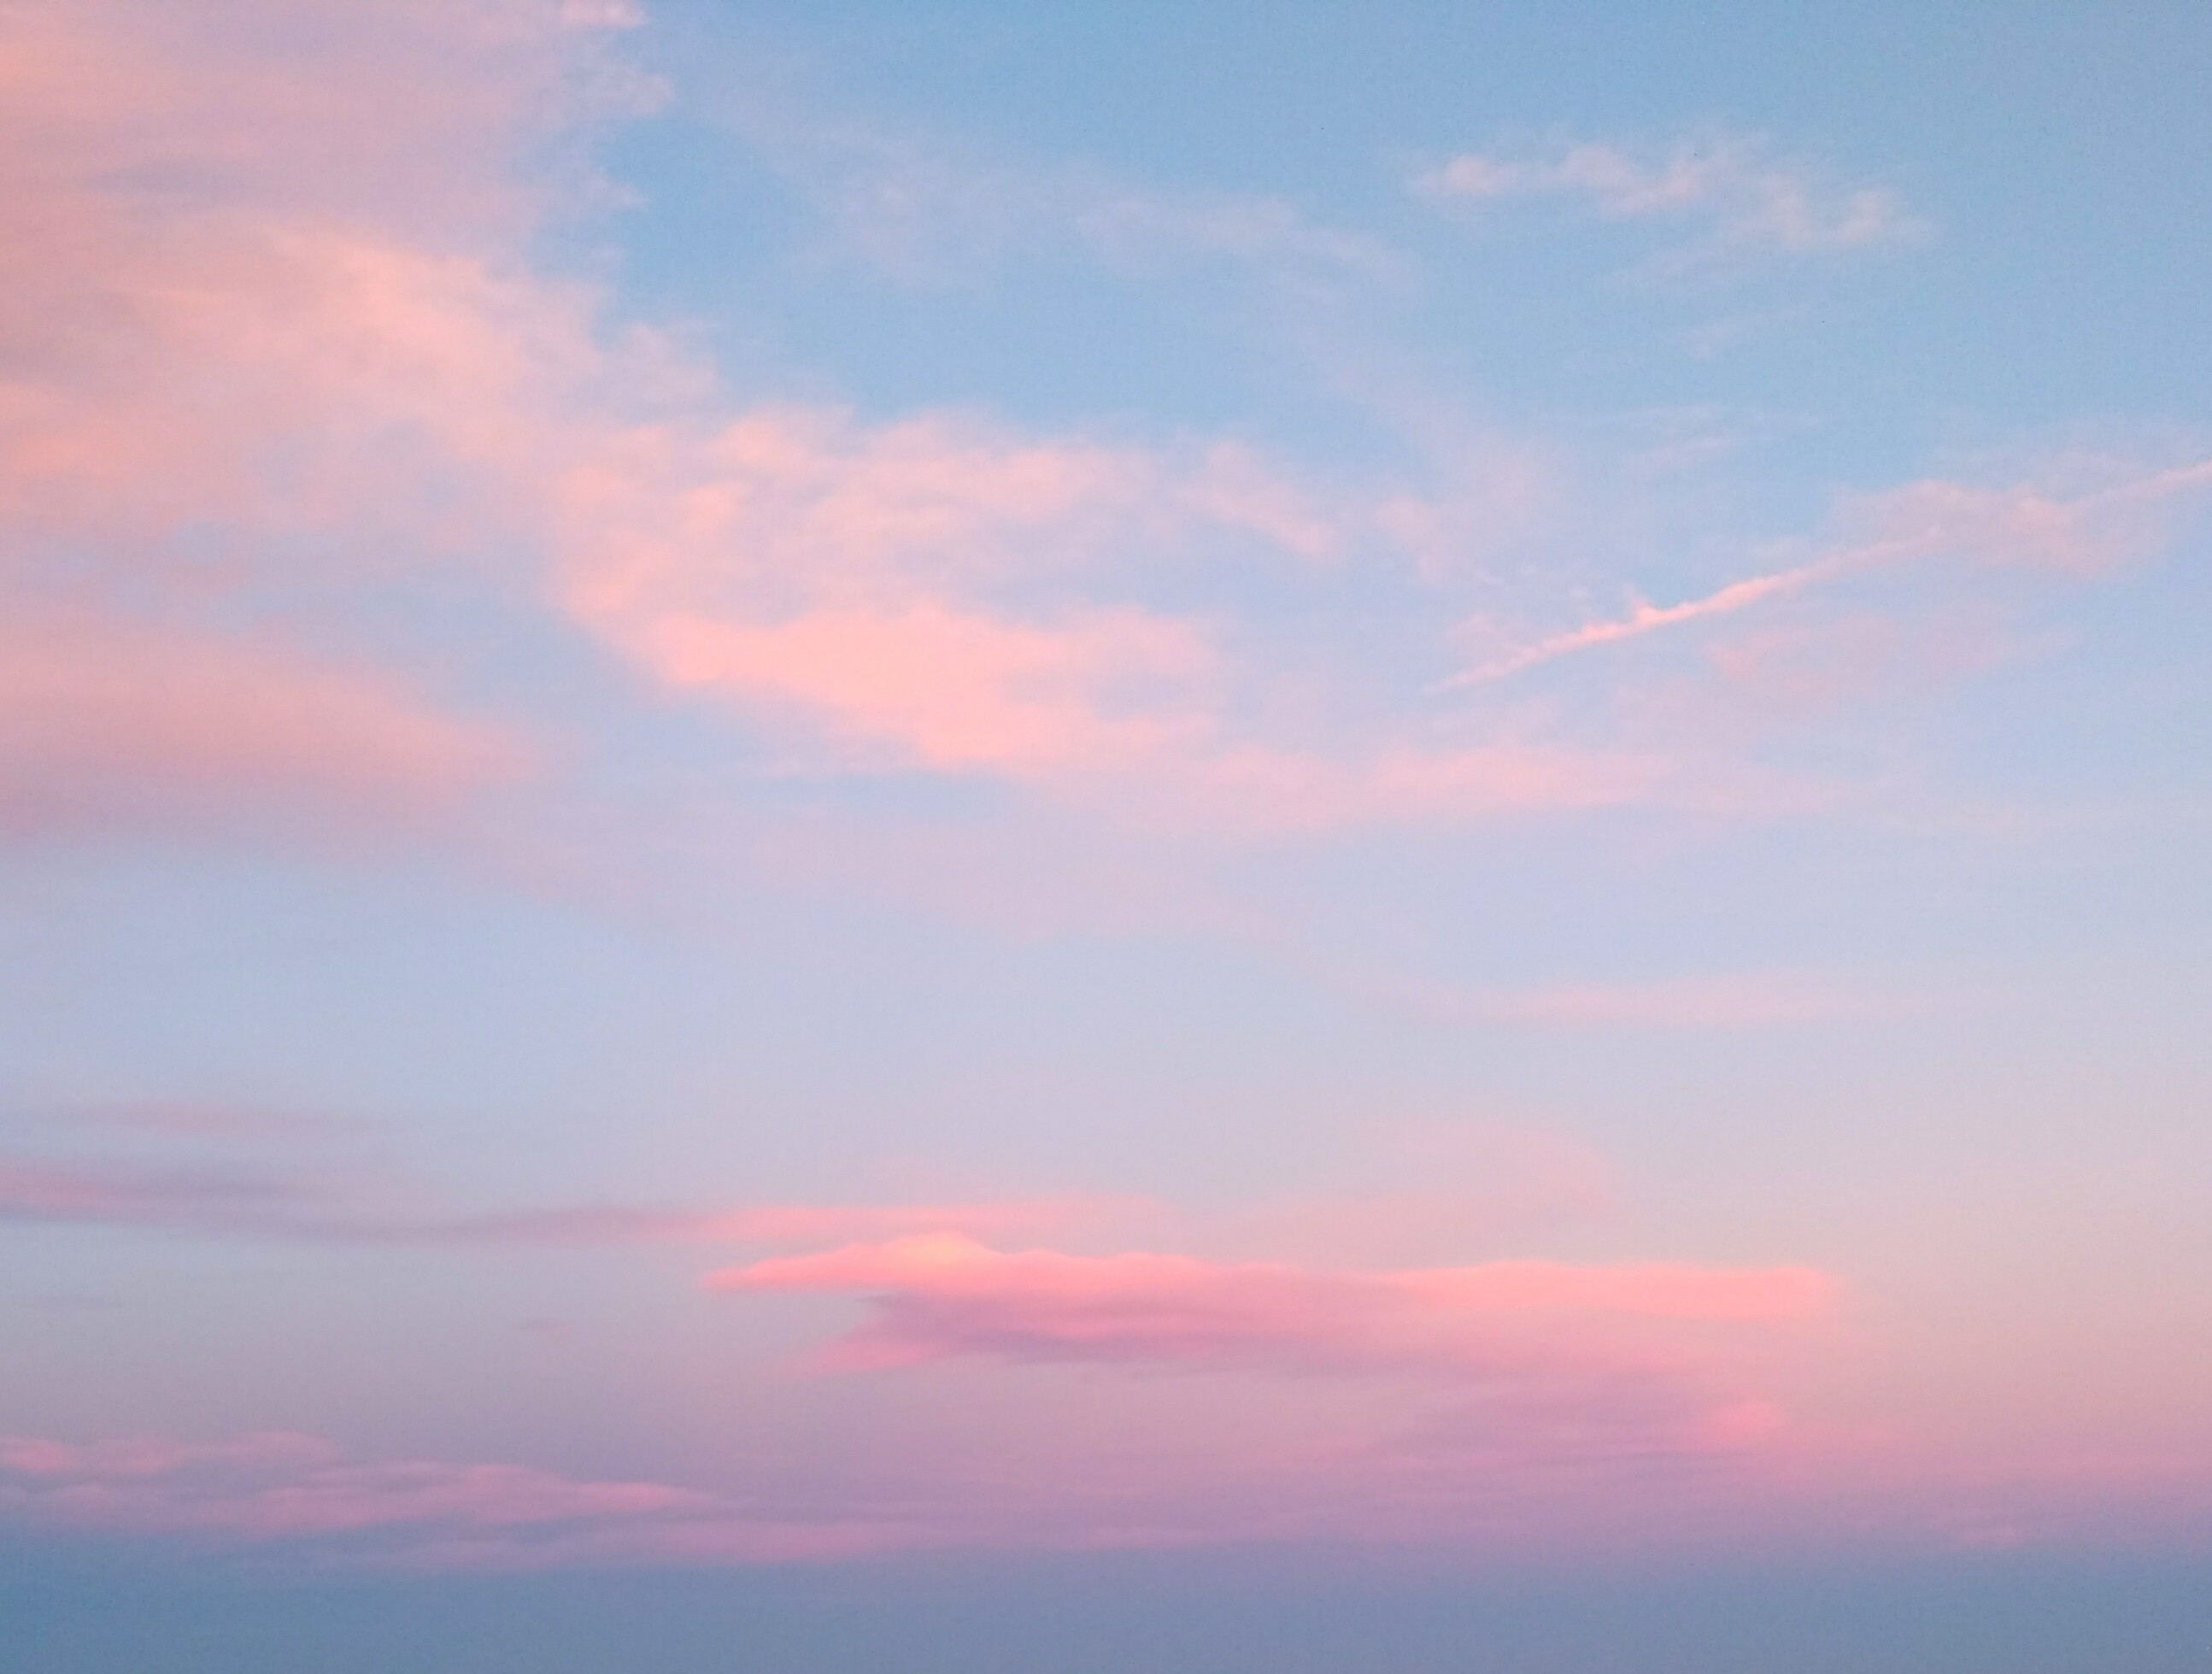 Cute Pinkish Wallpapers 500 Pink Sky Pictures Download Free Images On Unsplash